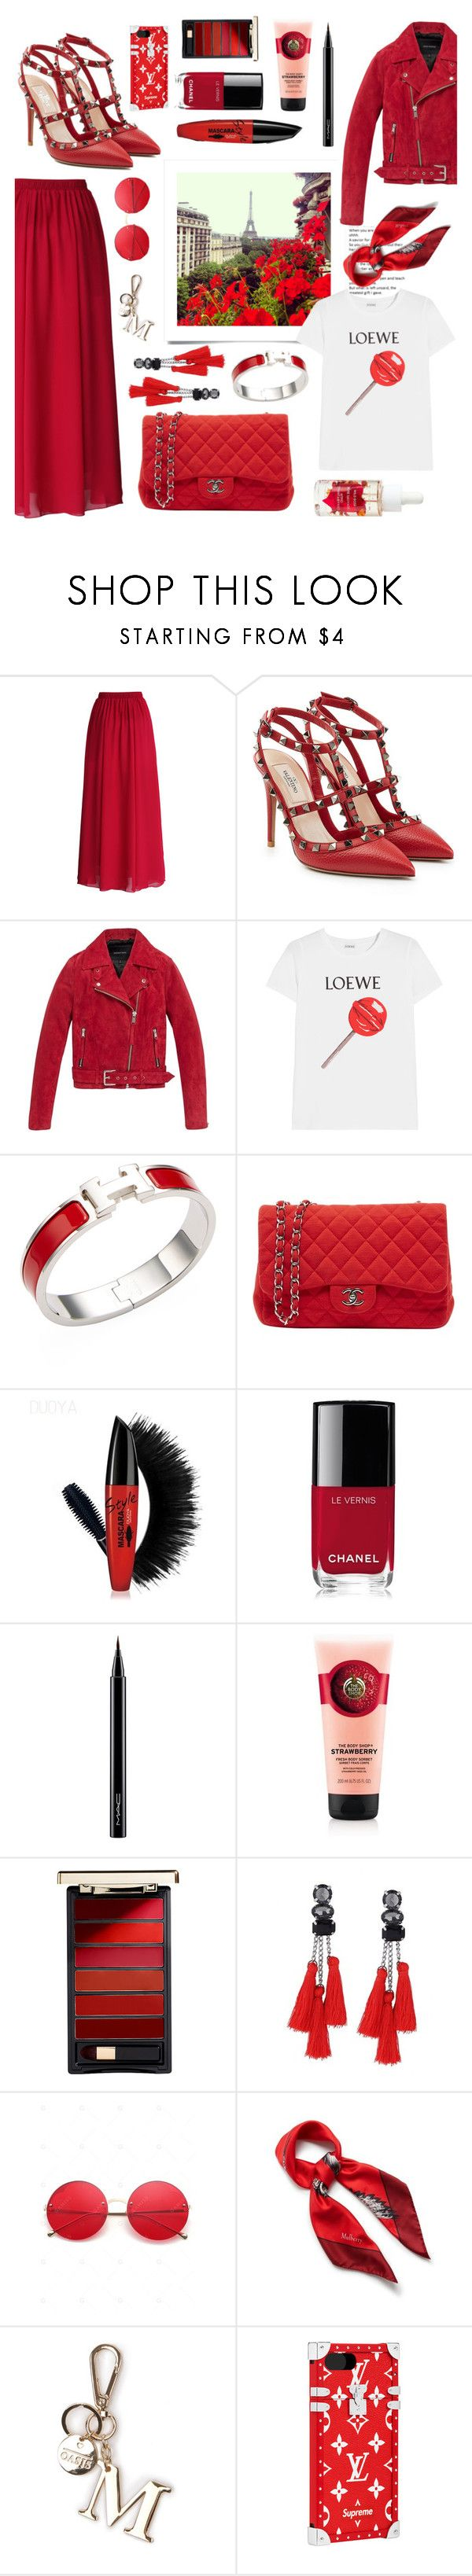 """""""Red pleated skirt"""" by ida-sofie-strom ❤ liked on Polyvore featuring Chicwish, Valentino, Andrew Marc, Loewe, Hermès, Chanel, MAC Cosmetics, L'Oréal Paris, Mulberry and Louis Vuitton"""